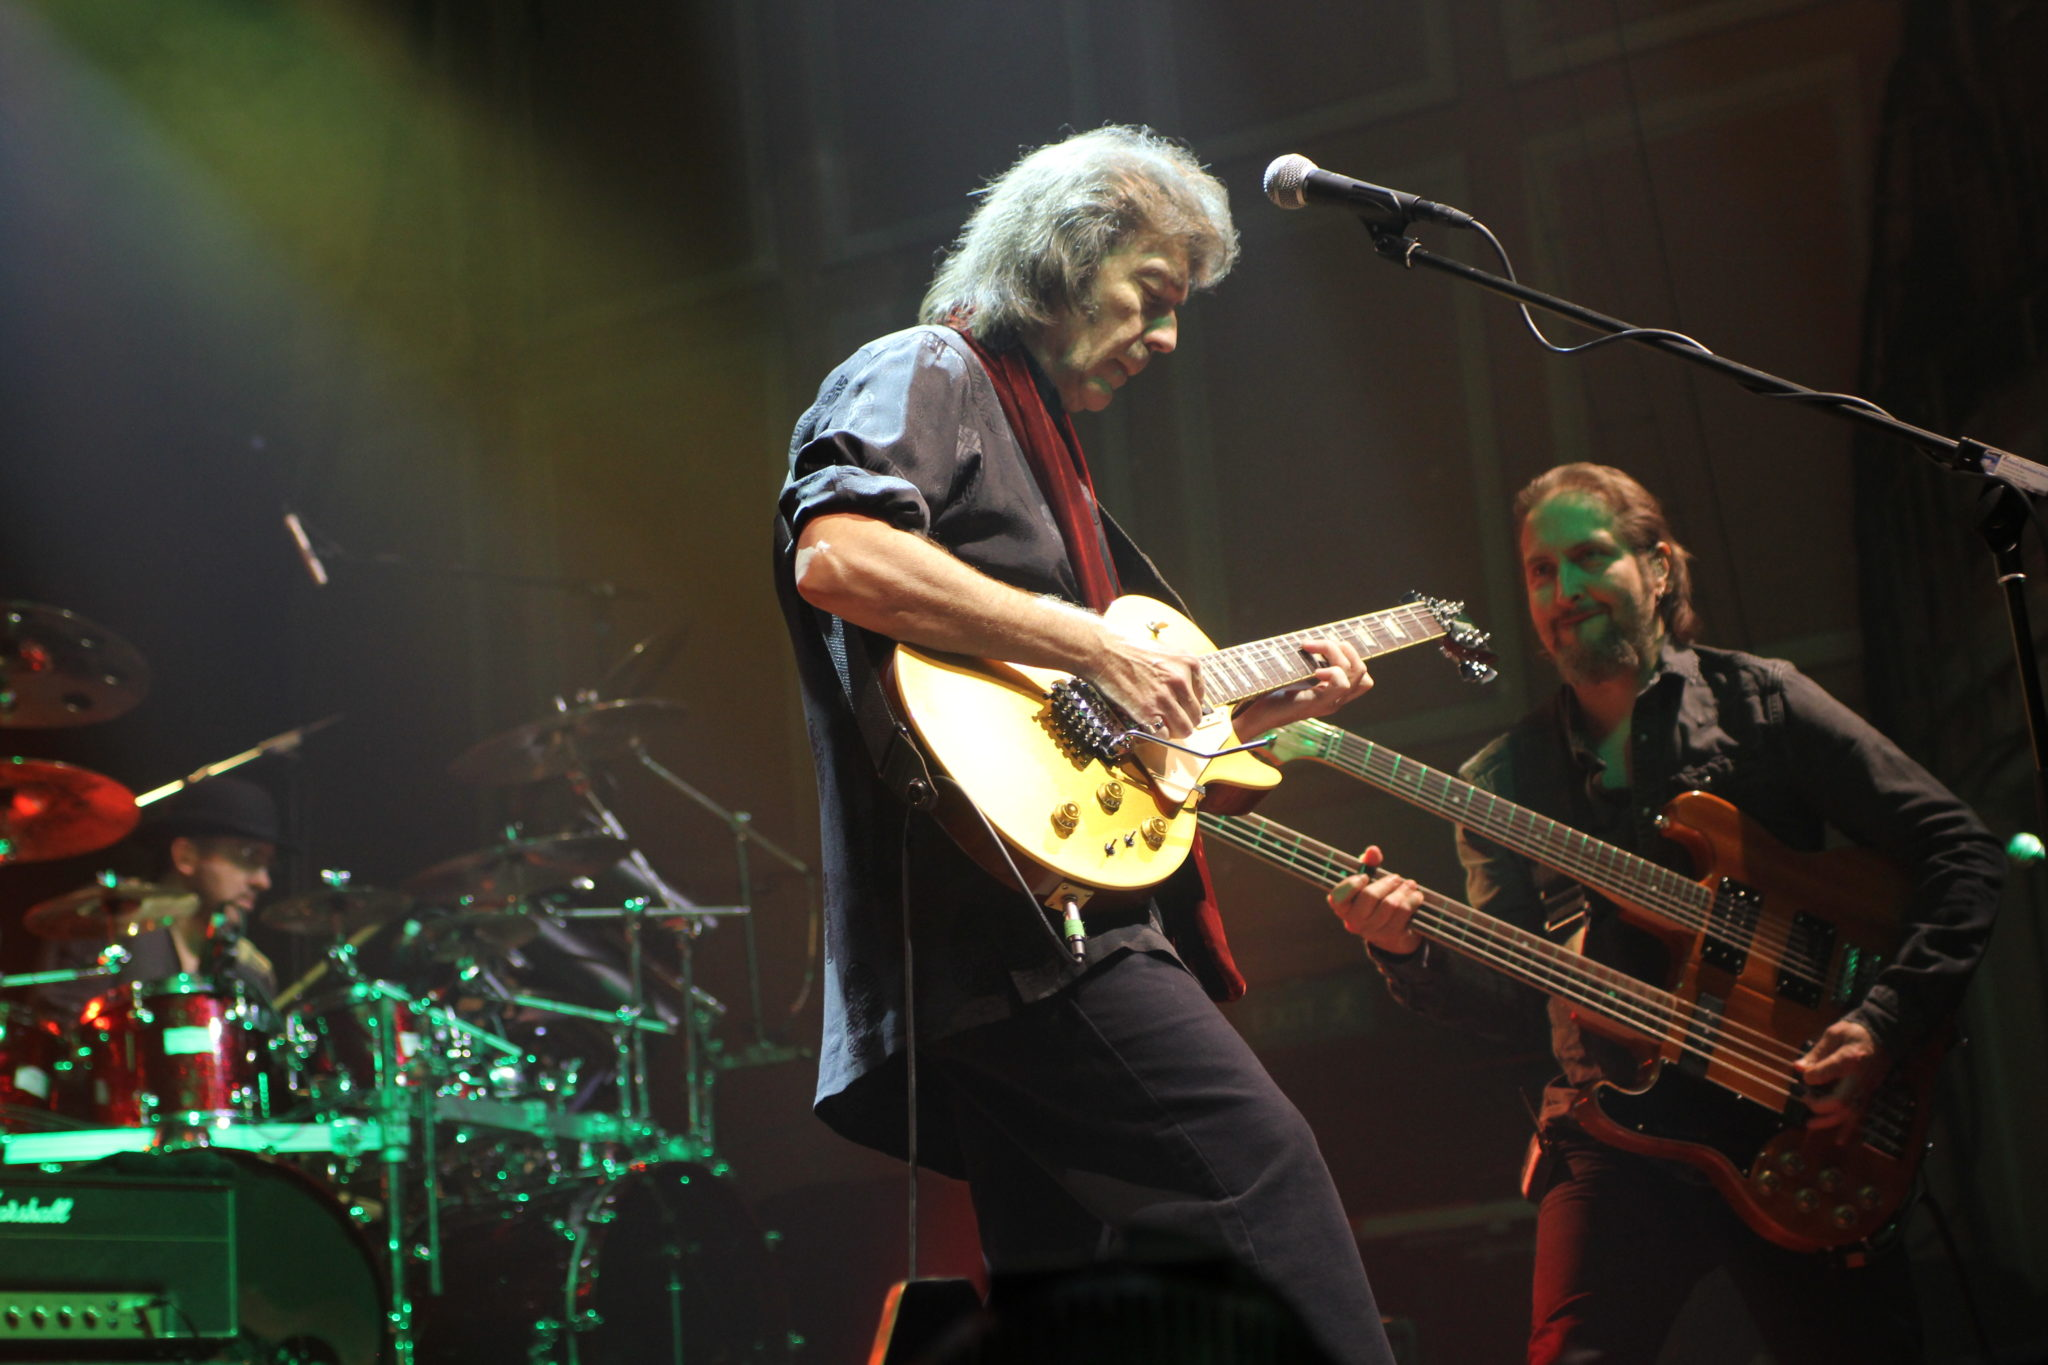 Steve Hackett and Lee Pomelroy by Mick Burgess